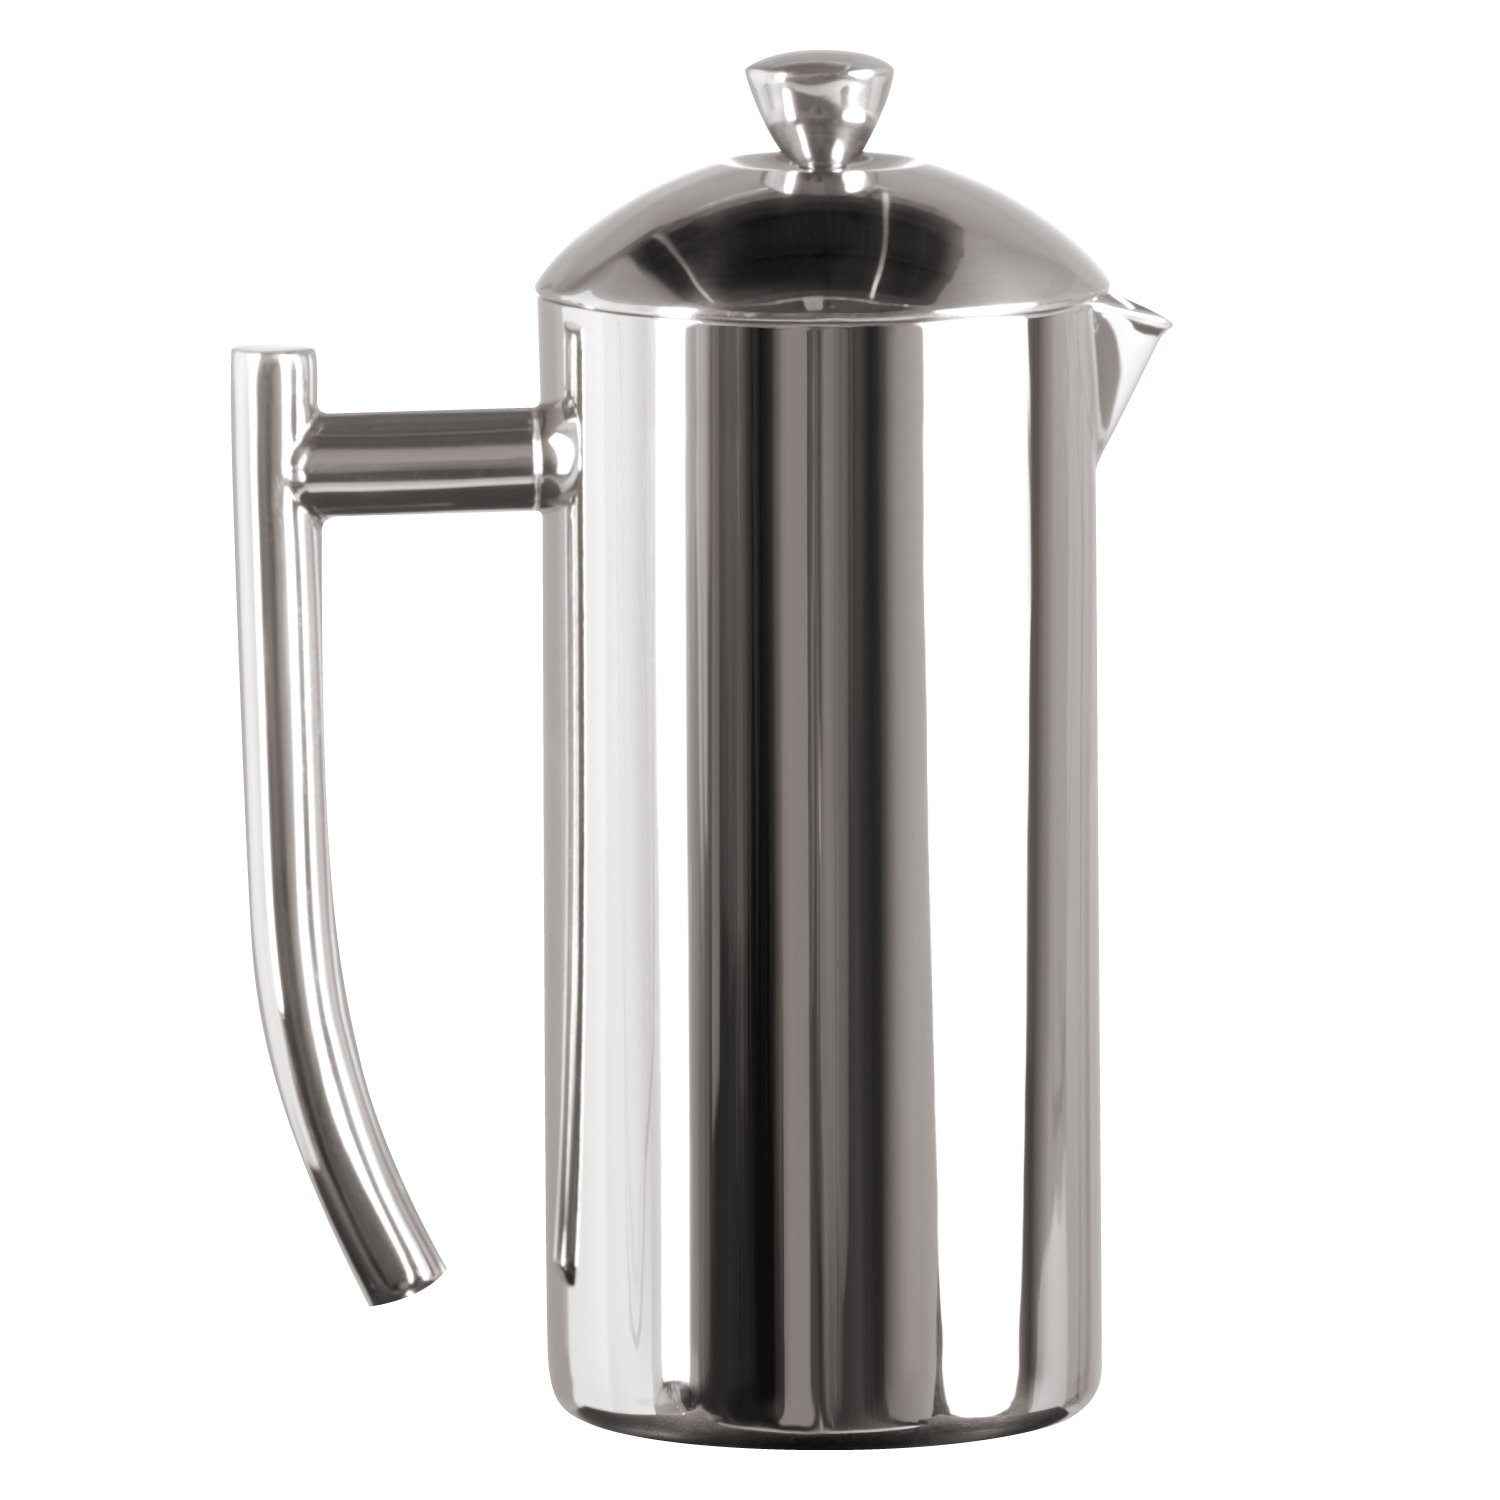 Frieling USA Double Wall Stainless Steel French Press Coffee Maker with Zero Sediment Dual Screen, Polished, 17-Ounce by Frieling